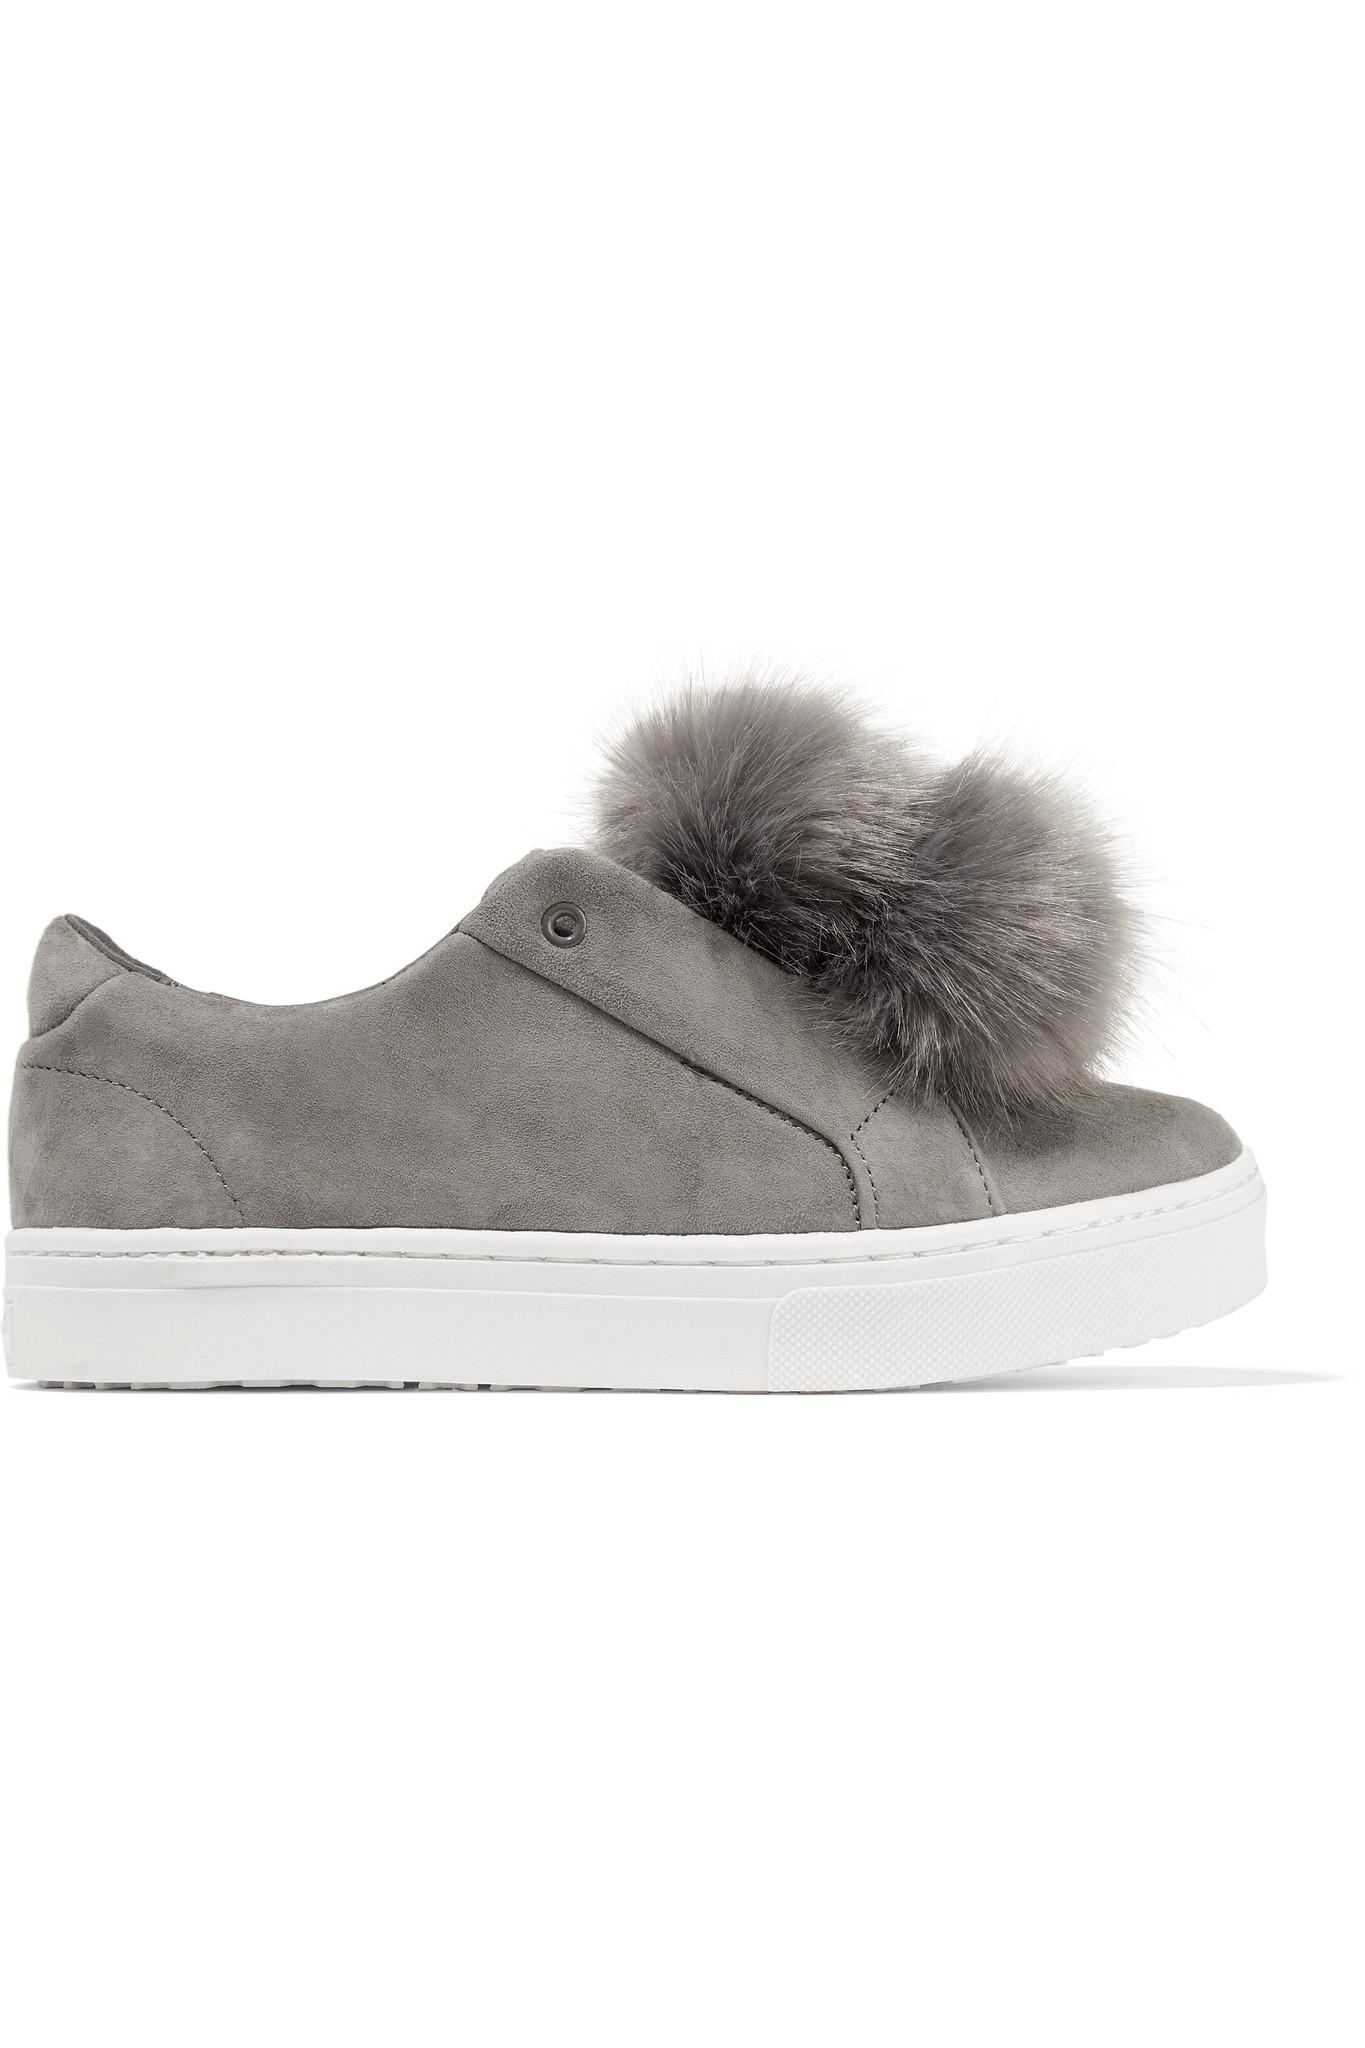 ca116f6a985458 Lyst - Sam Edelman Leya Faux Fur-embellished Suede Slip-on Sneakers ...